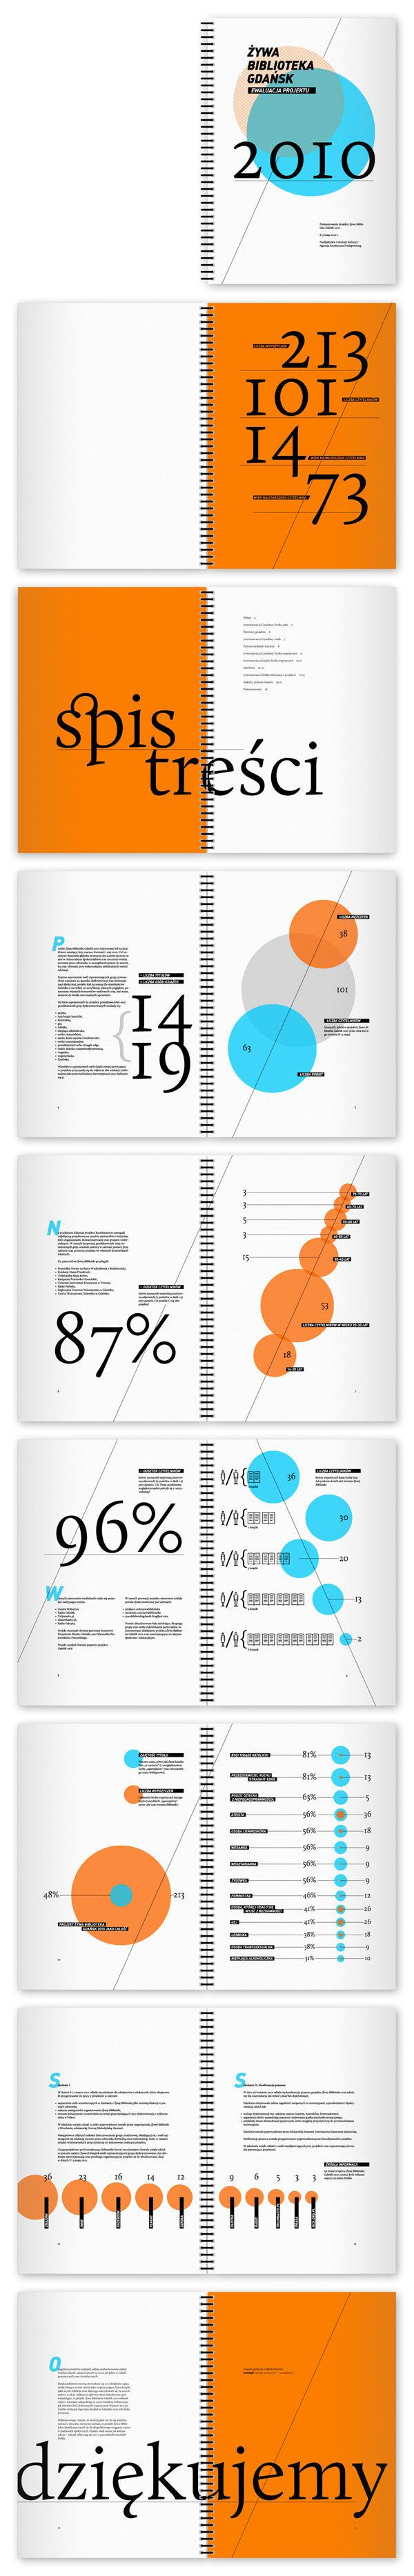 human library gdańsk 2010: identity, infographics, www by numalab , via Behance